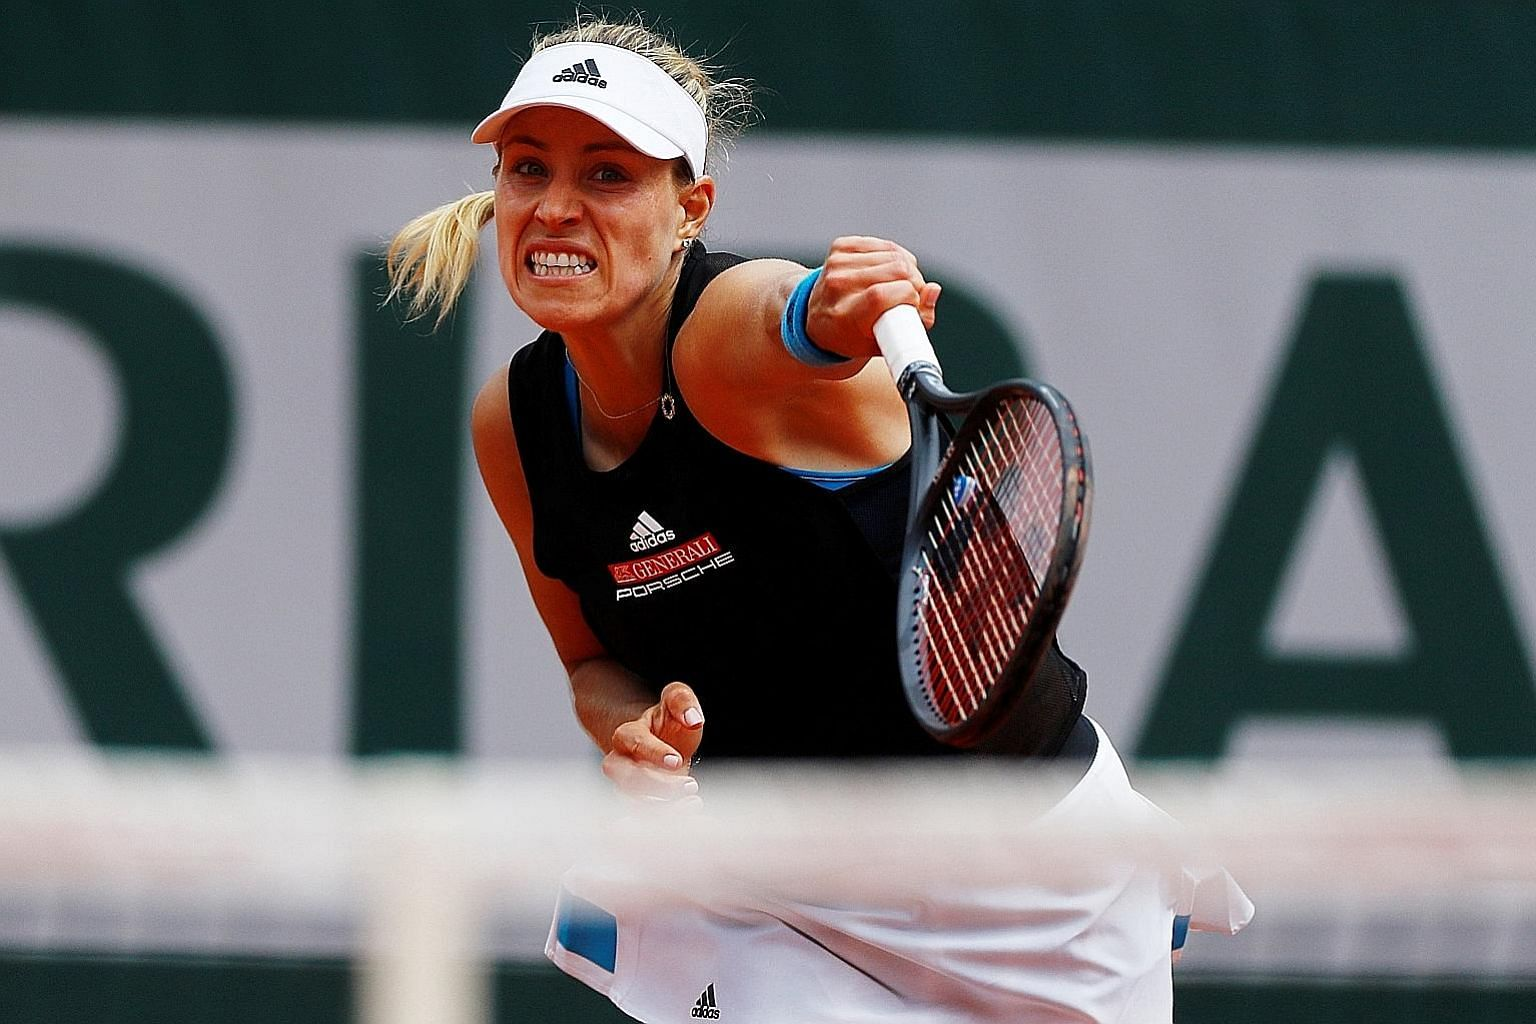 Angelique Kerber has now lost six times in the first round of the French Open, after she slumped to a 6-4, 6-2 loss to Russian teenager Anastasia Potapova yesterday.